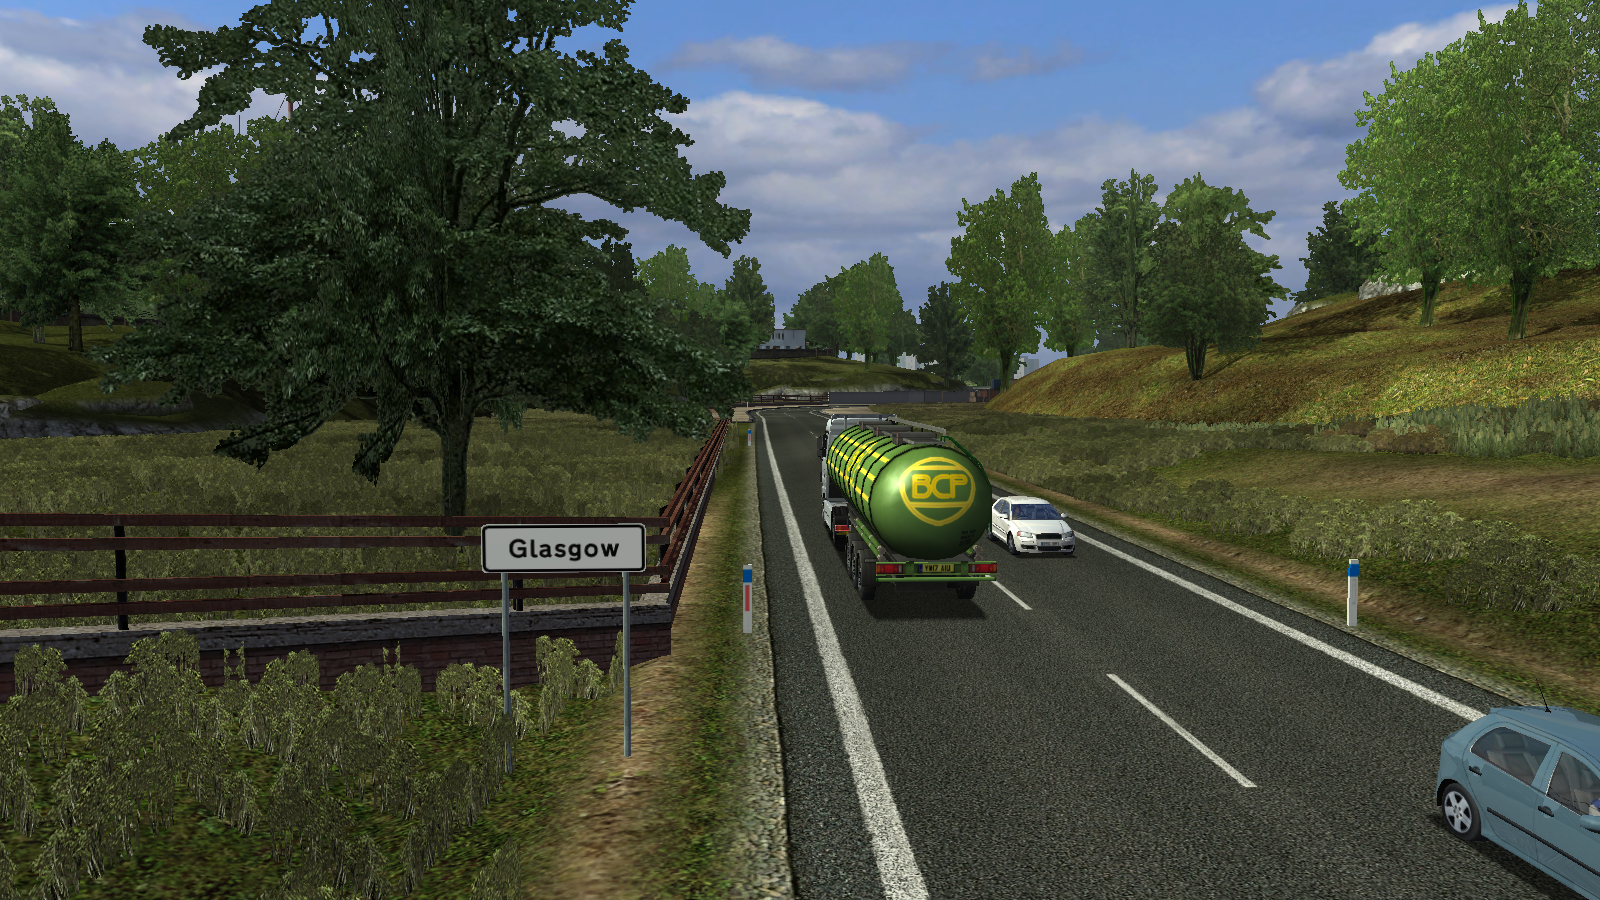 Glasgow/UK Truck Simulator